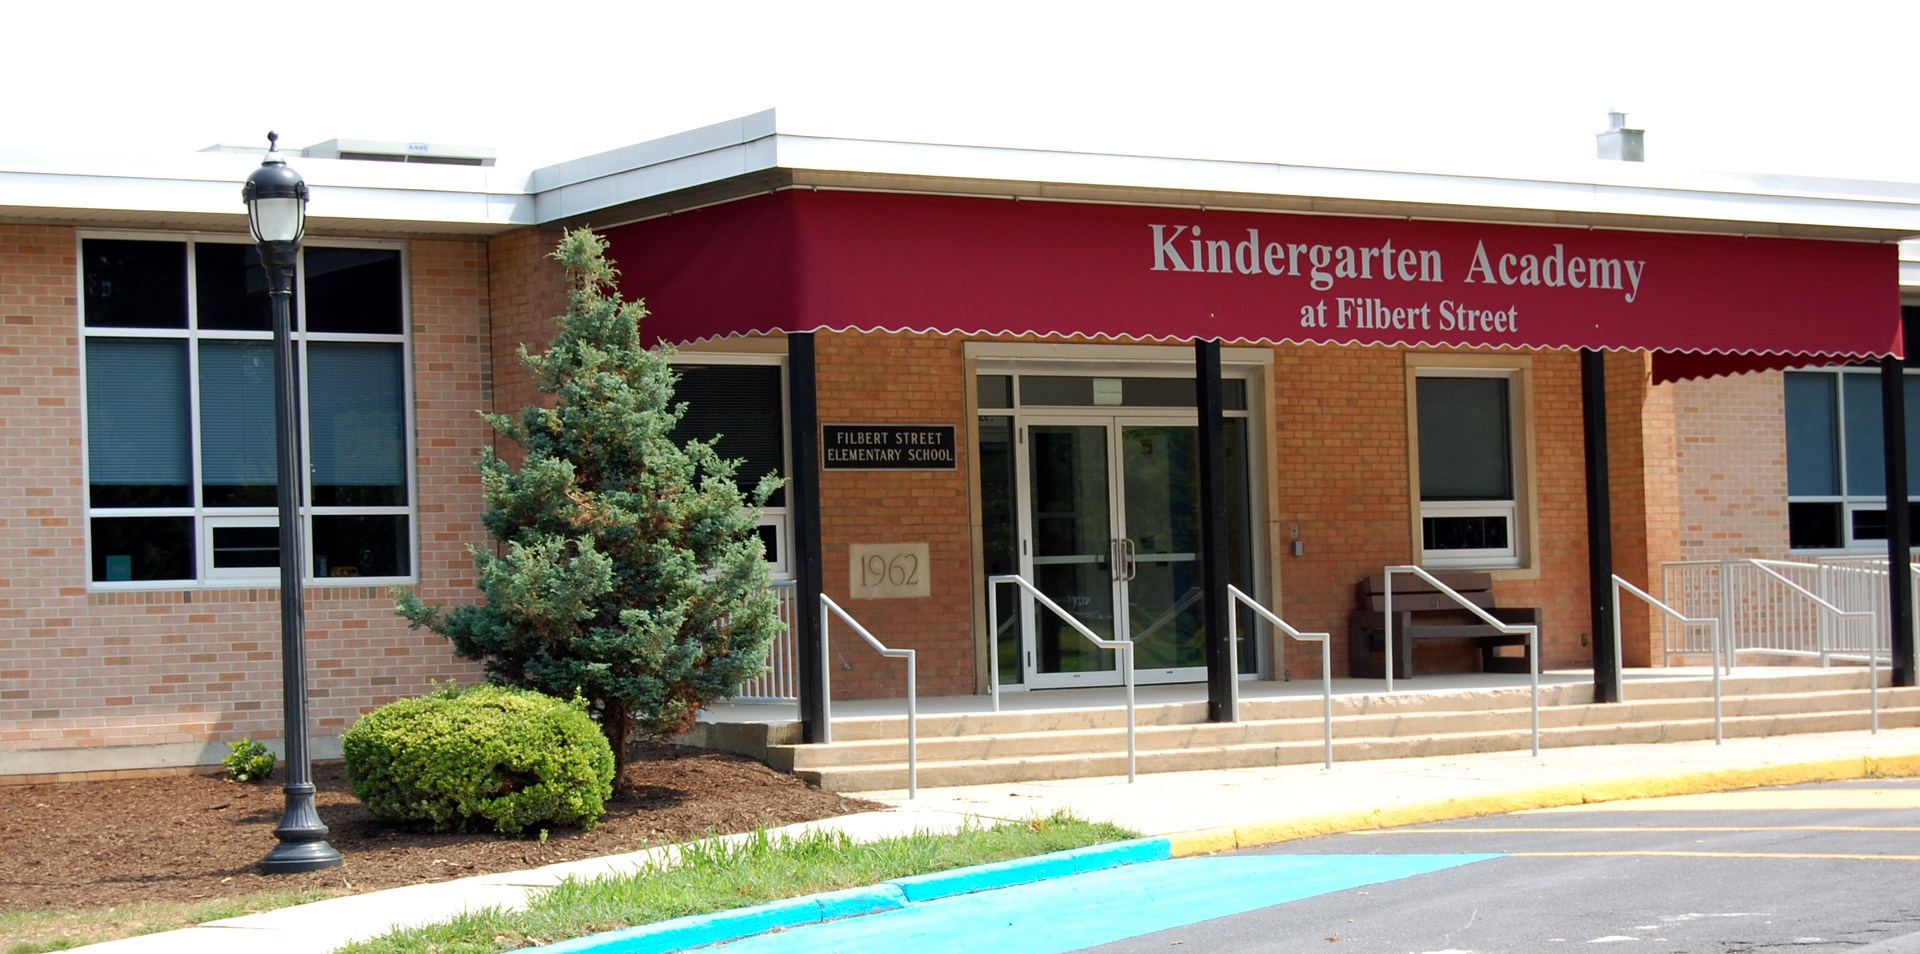 Picture of Kindergarten Academy